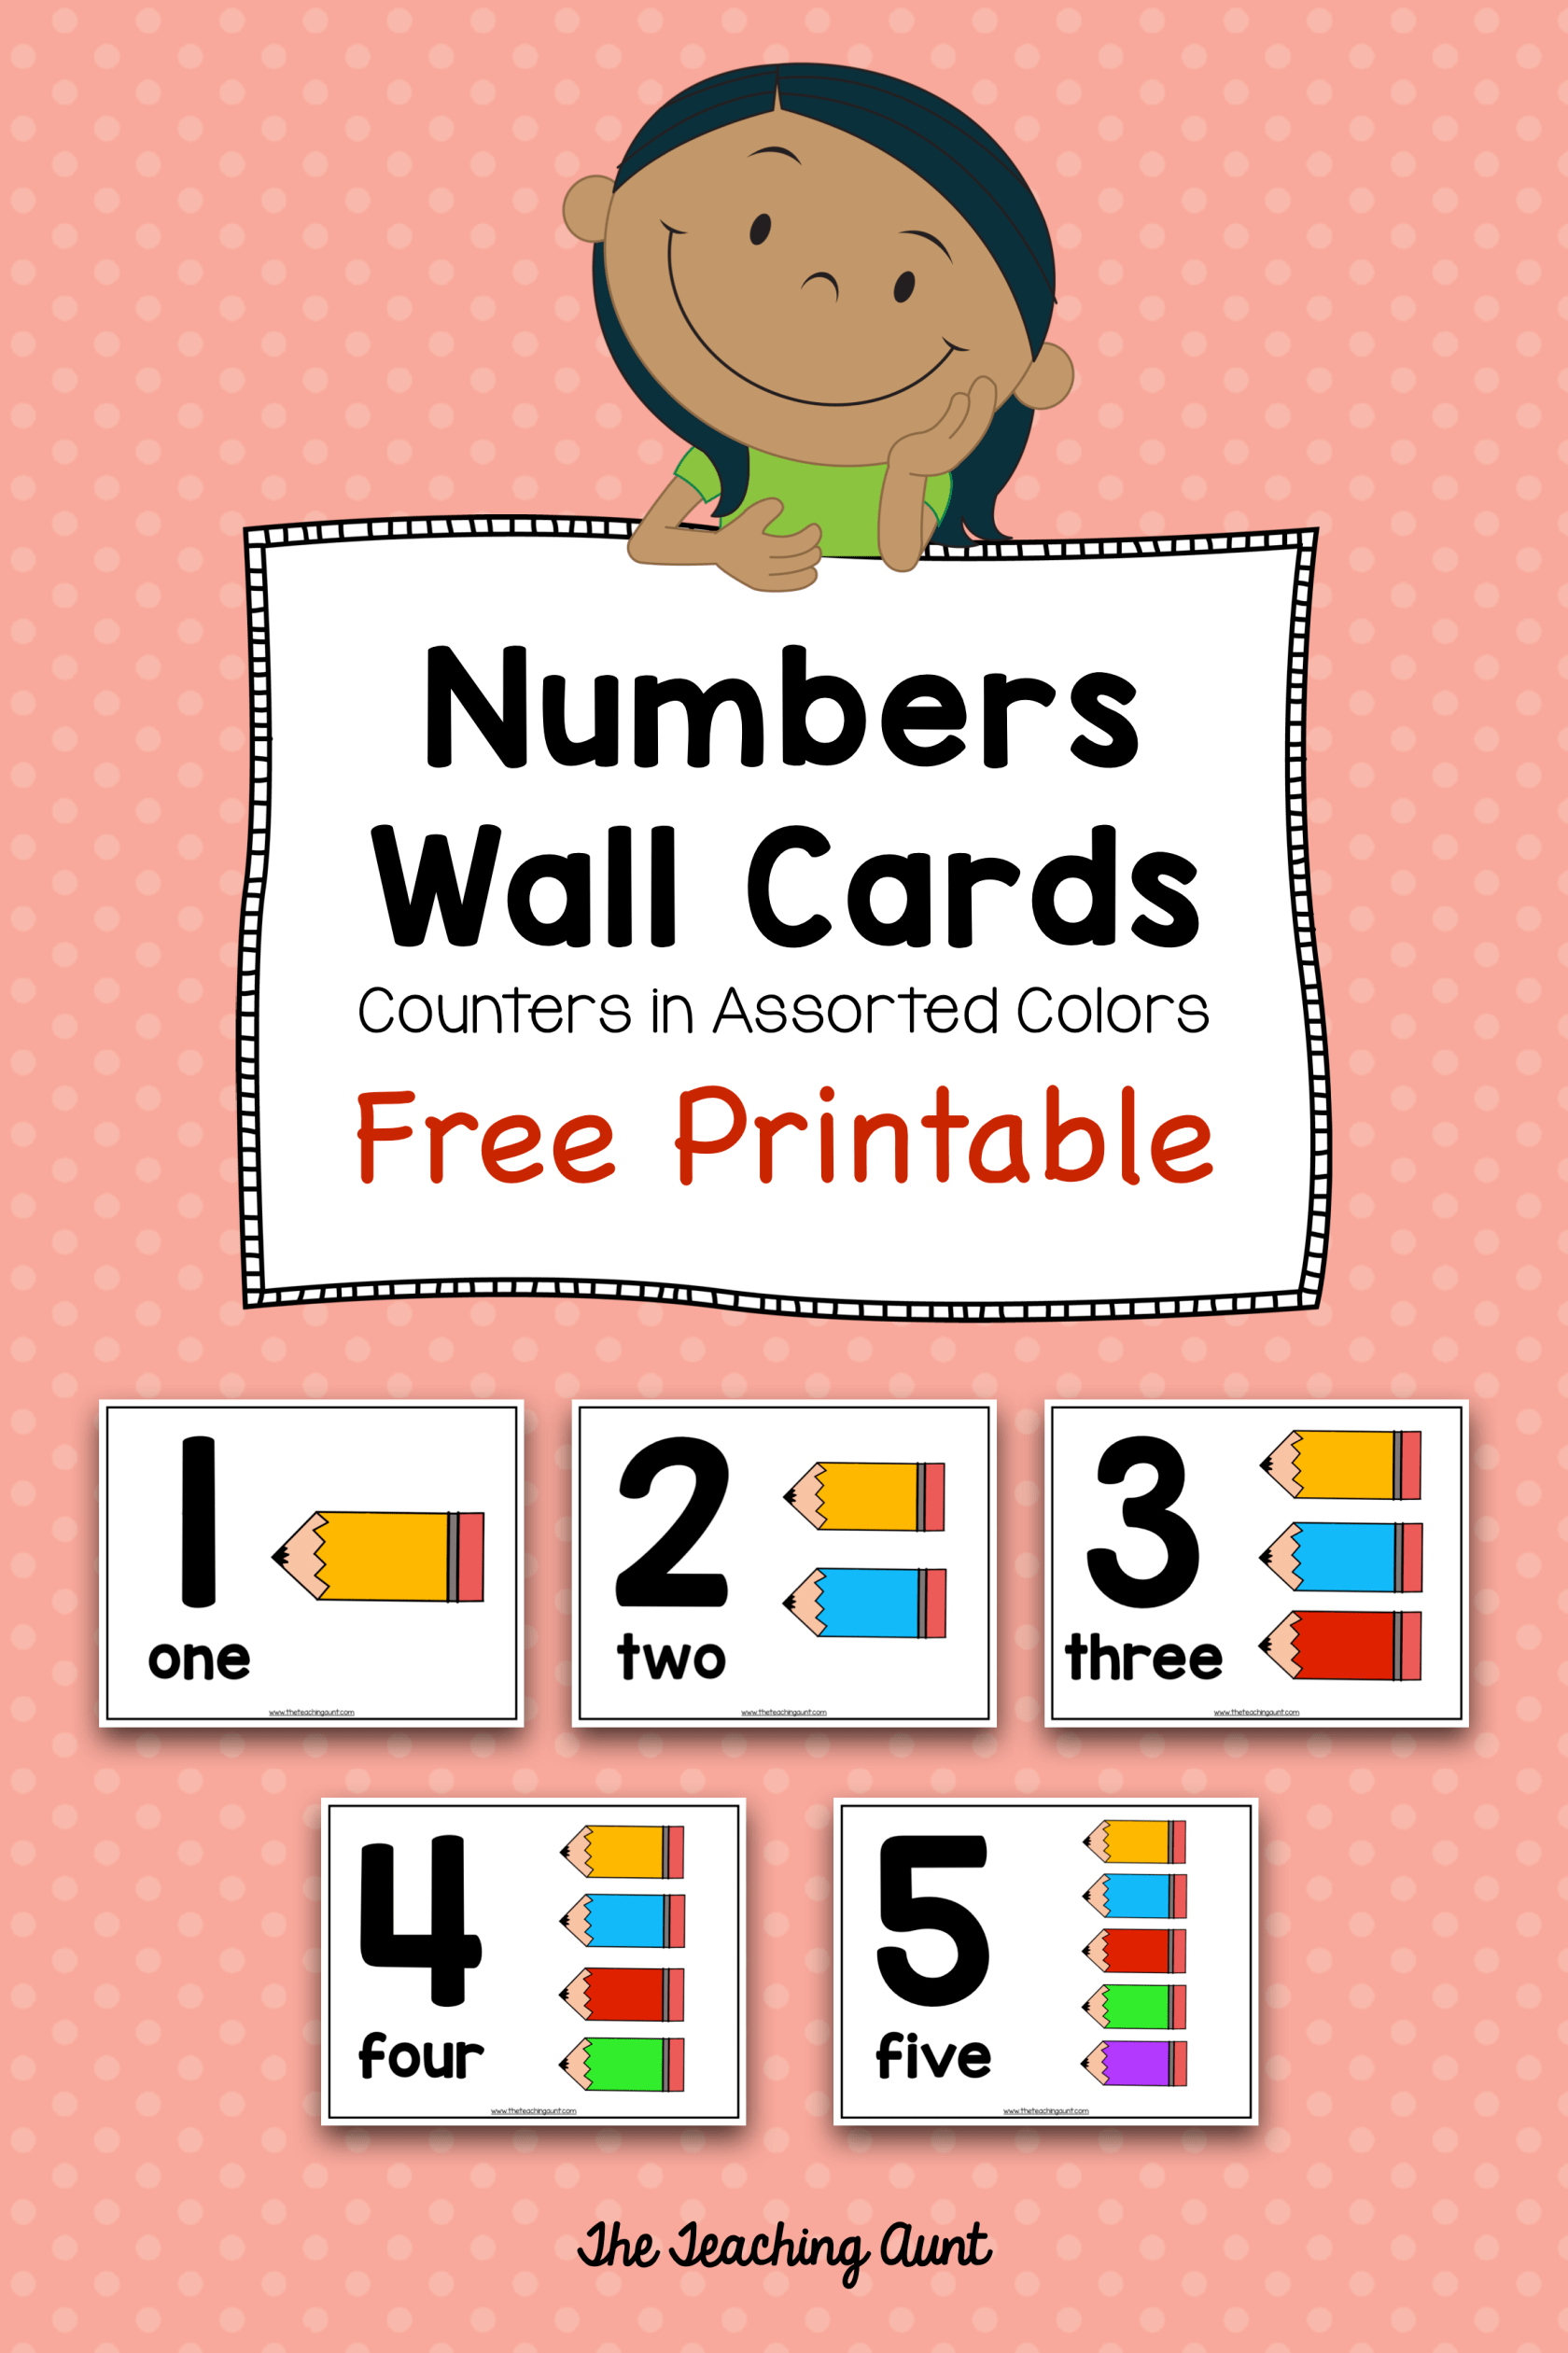 Numbers 1 10 Wall Cards Free Printable The Teaching Aunt Numbers Preschool Printables Free Preschool Printables Numbers Preschool [ 2521 x 1680 Pixel ]